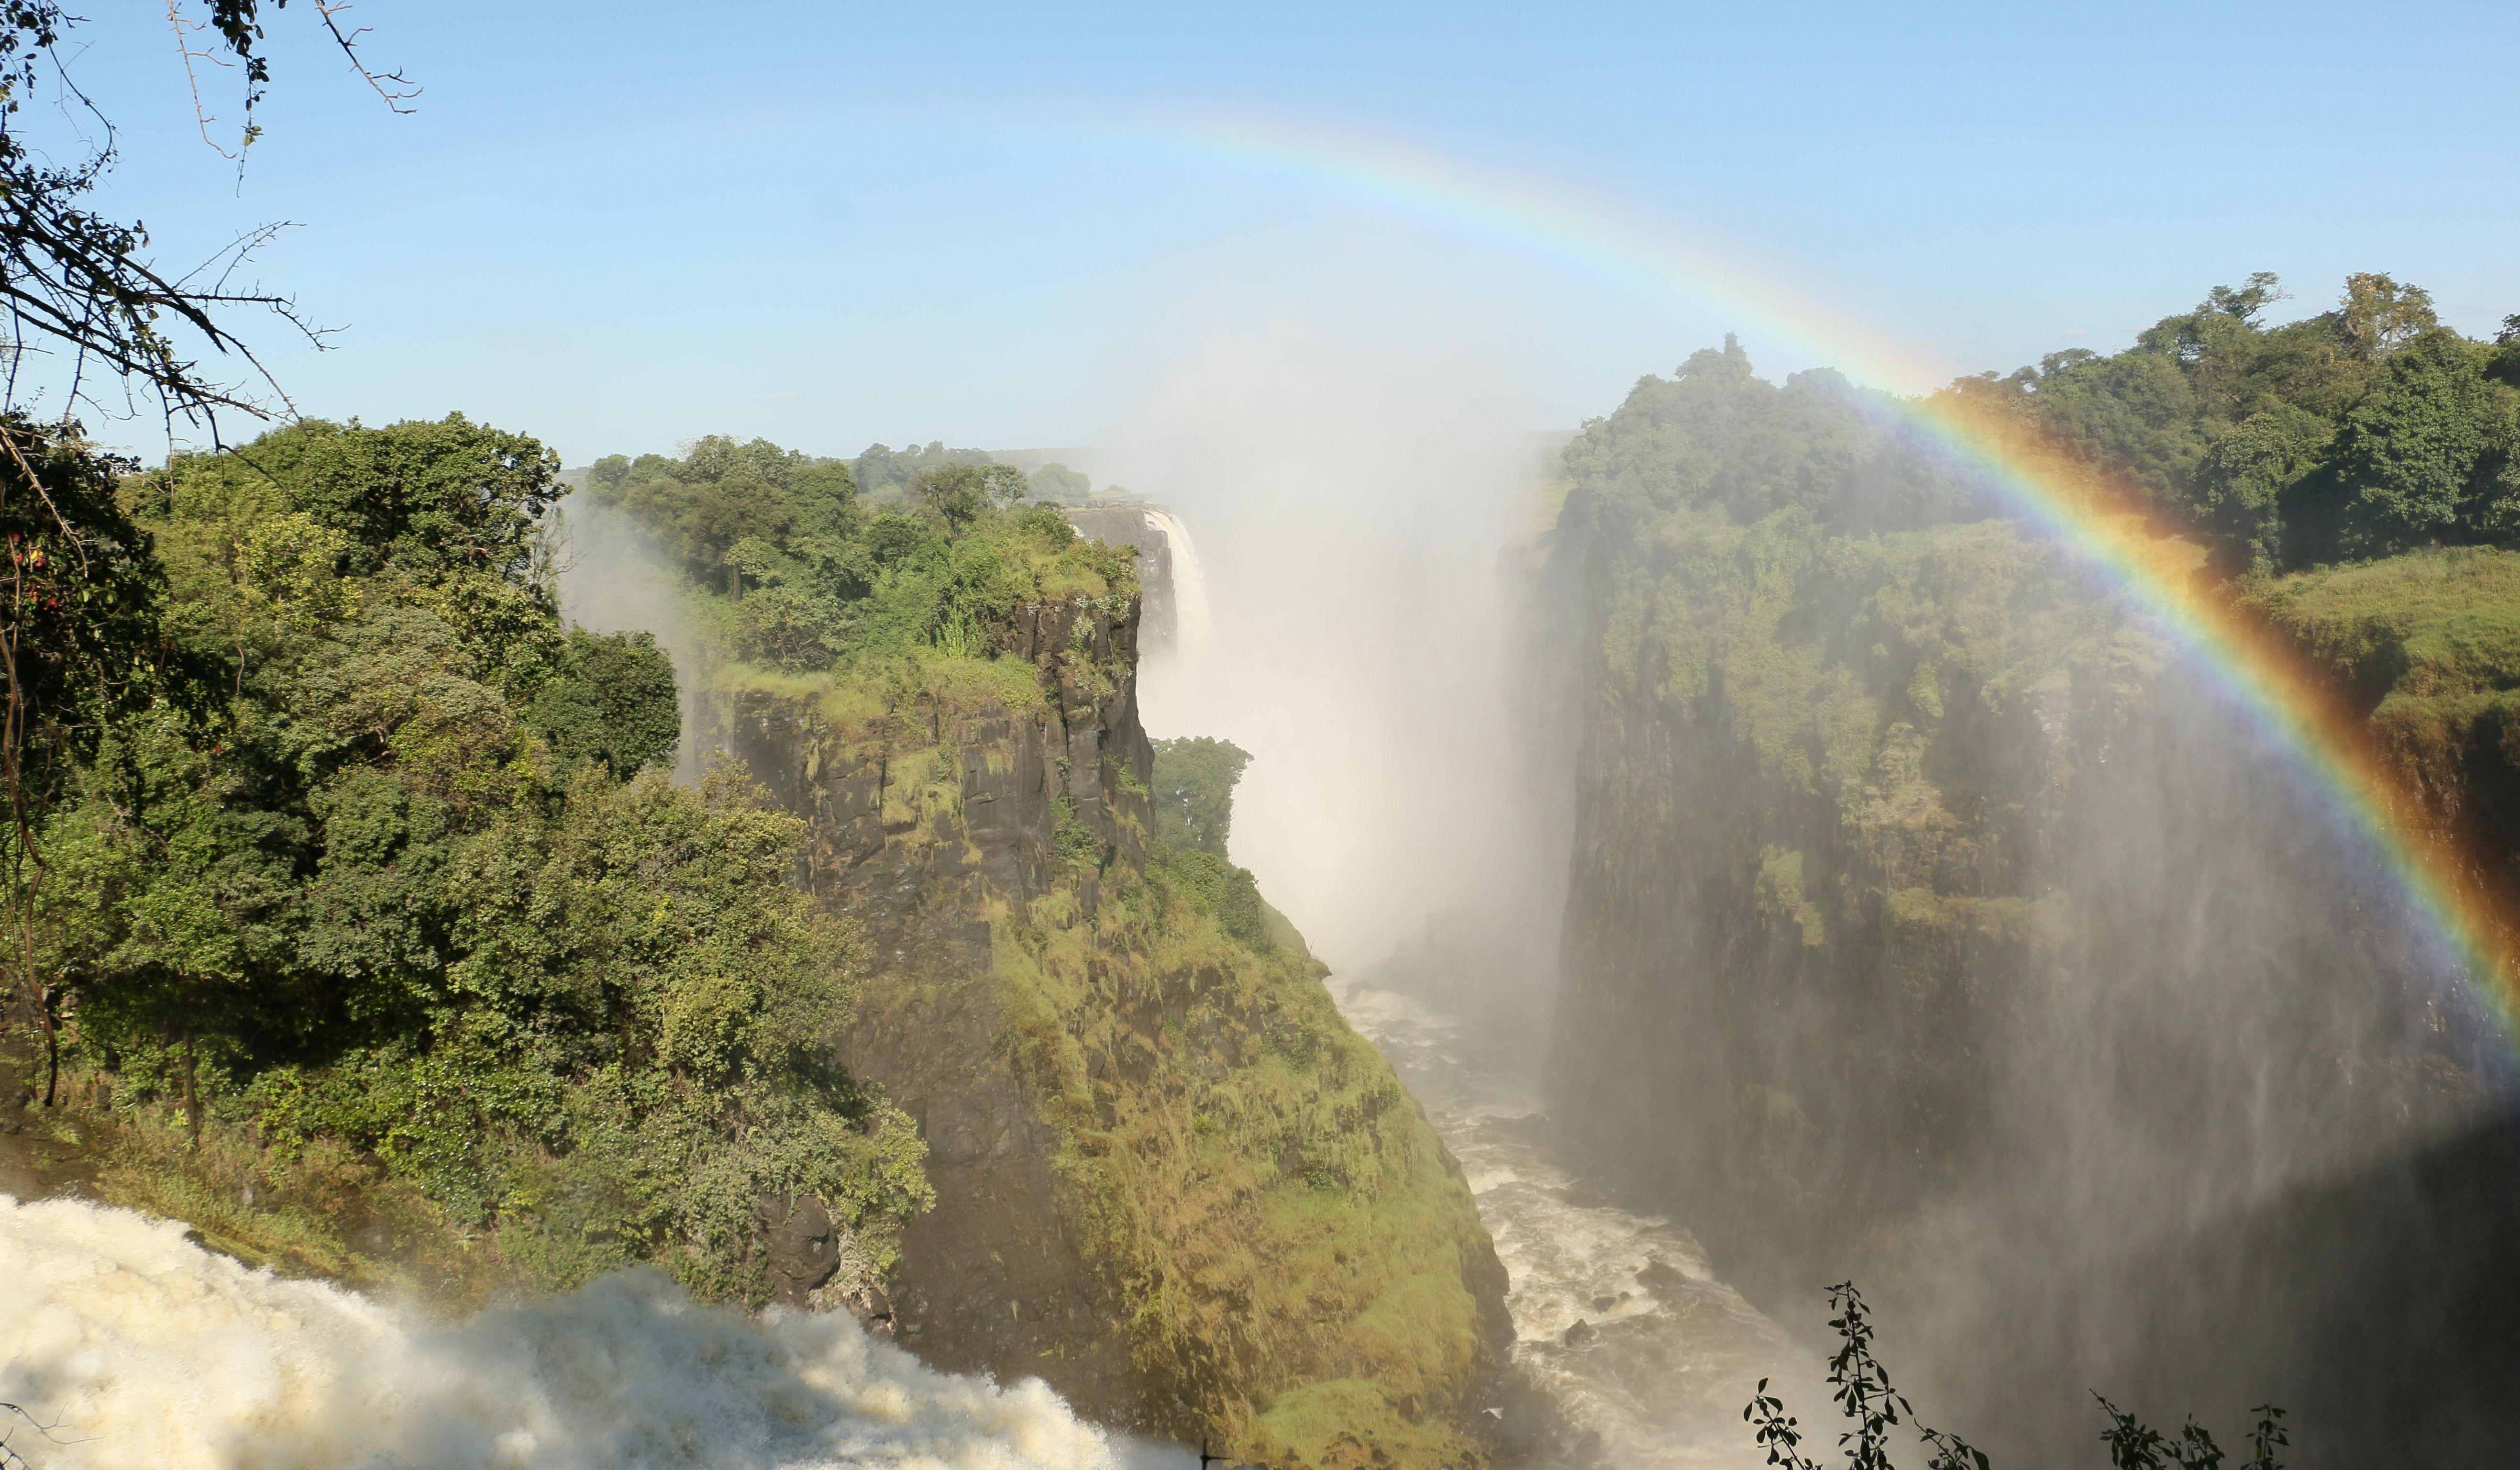 Enjoy a gentle stroll around the iconic Victoria Falls whilst being drenched by it's spray.